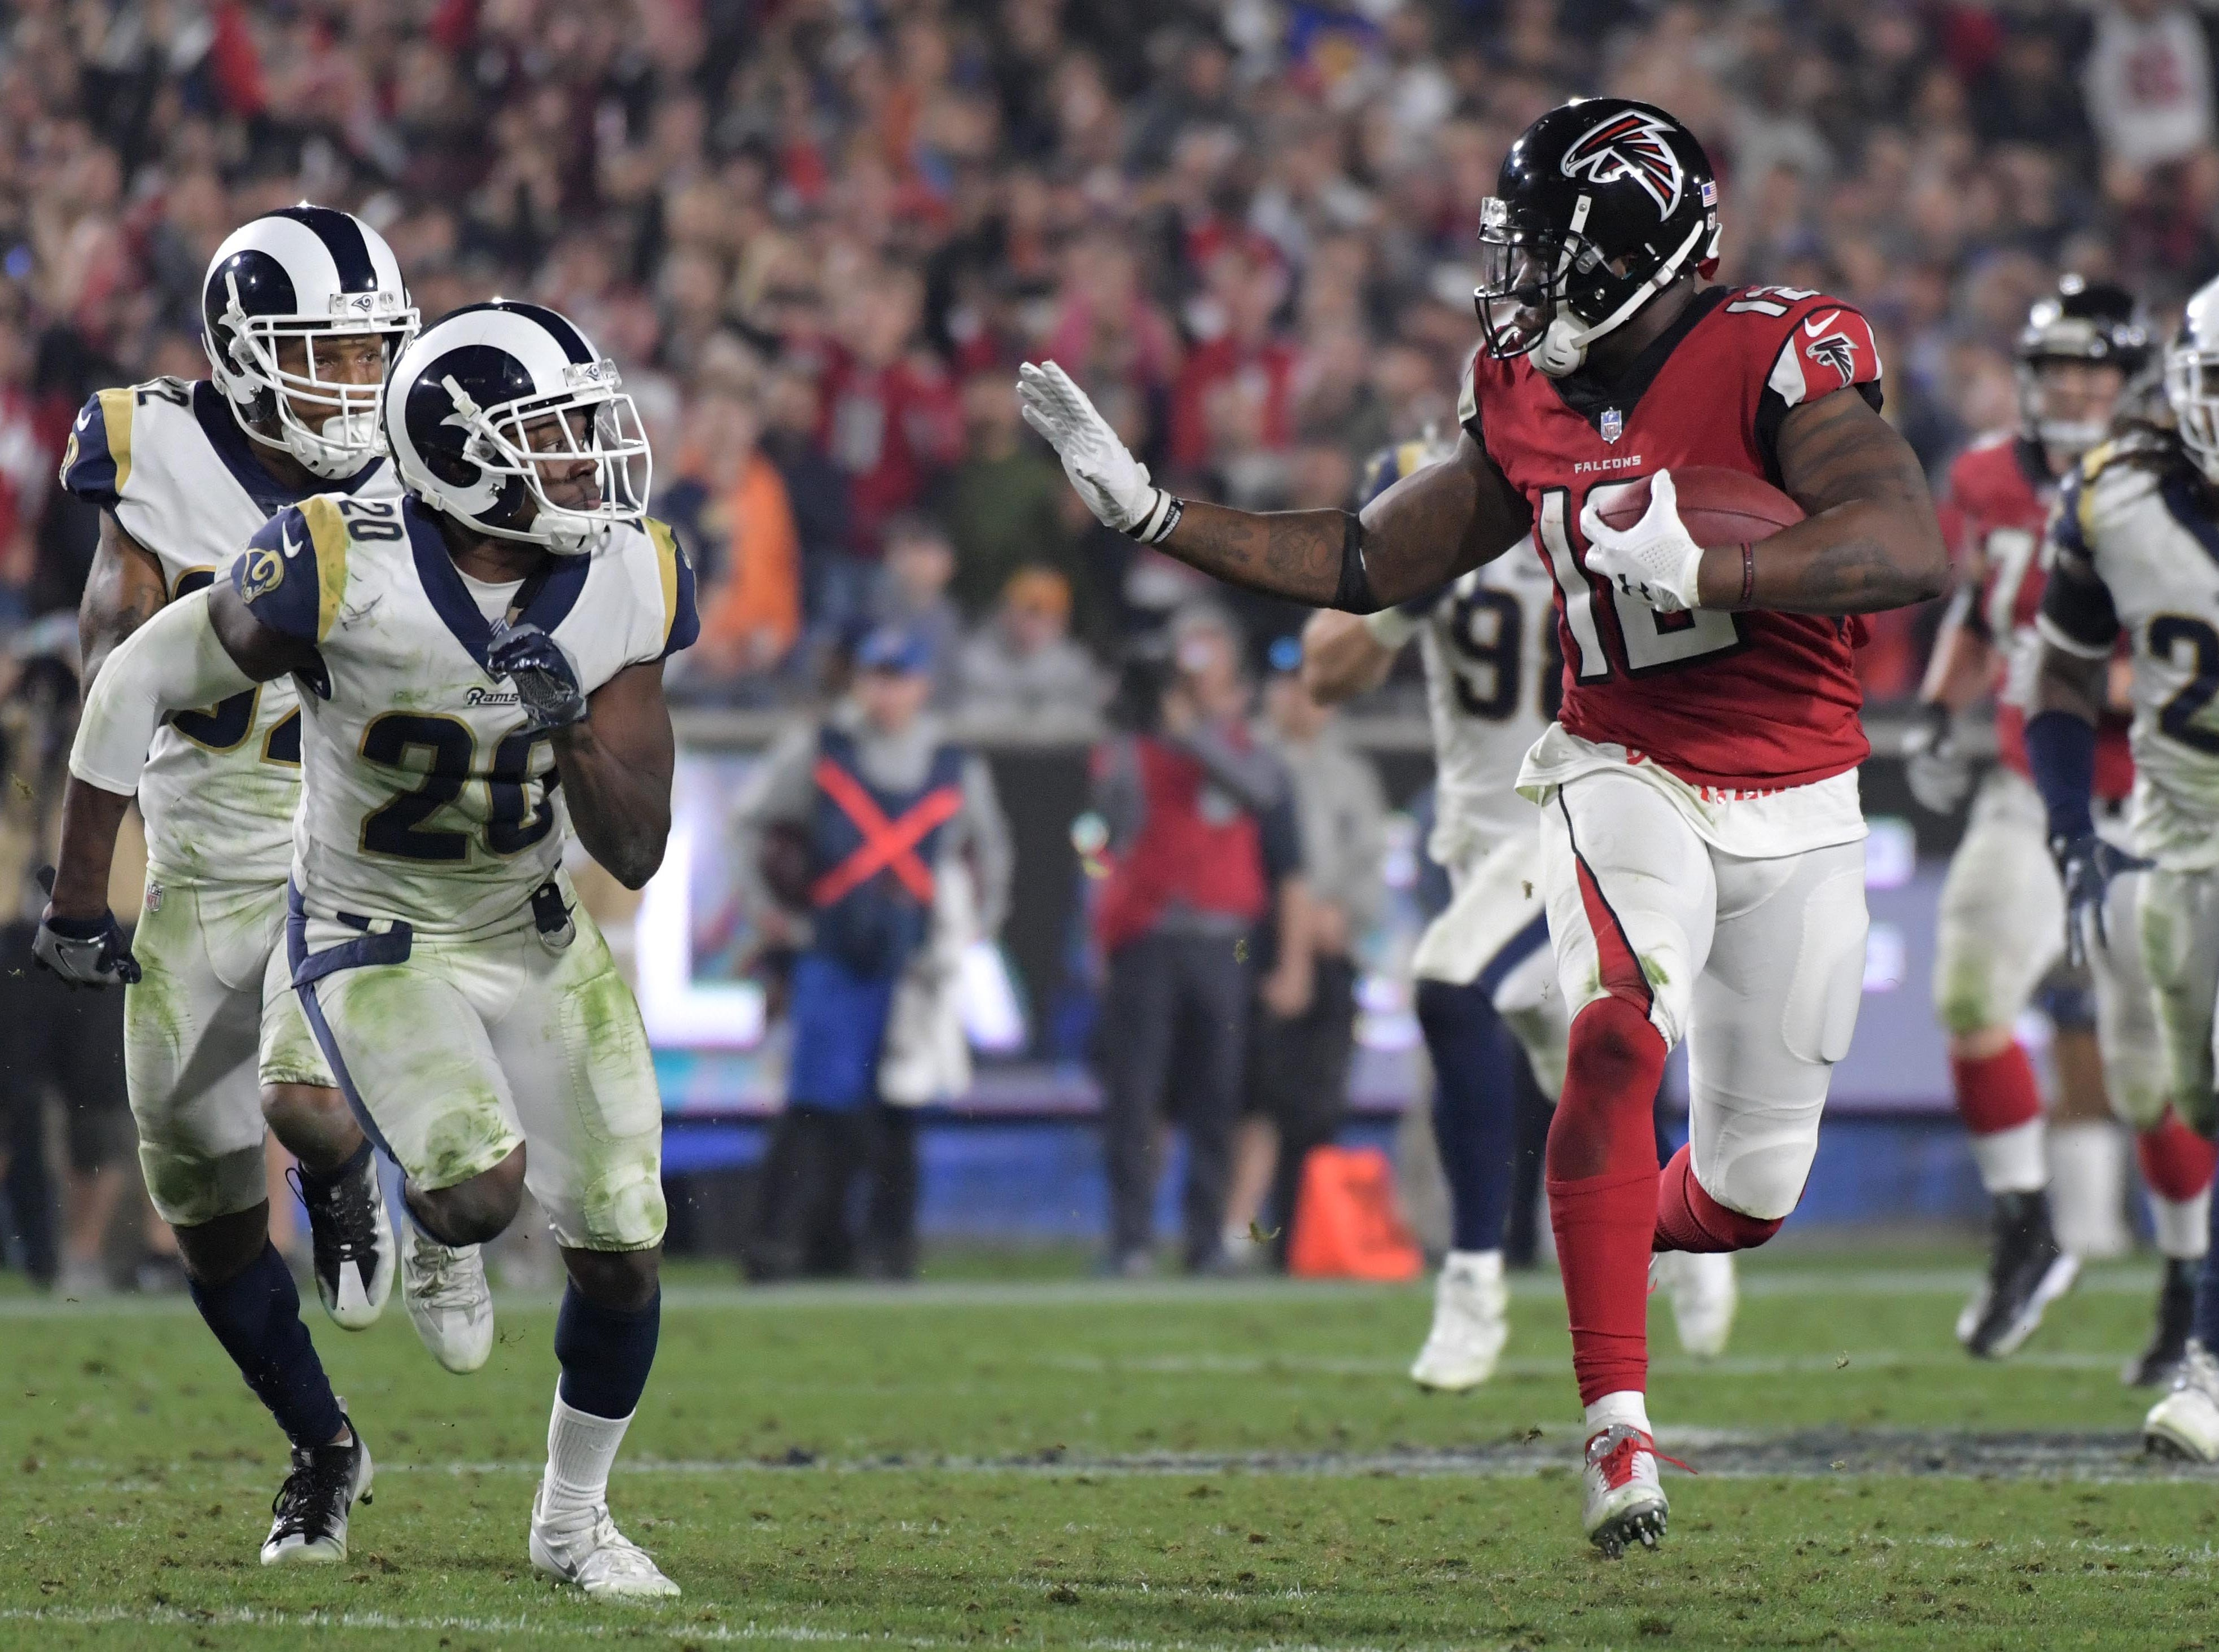 Jan 6, 2018; Los Angeles, CA, USA; Atlanta Falcons wide receiver Mohamed Sanu (12) runs against Los Angeles Rams free safety Lamarcus Joyner (20) in the fourth quarter in the NFC Wild Card playoff football game at Los Angeles Memorial Coliseum. Mandatory Credit: Kirby Lee-USA TODAY Sports